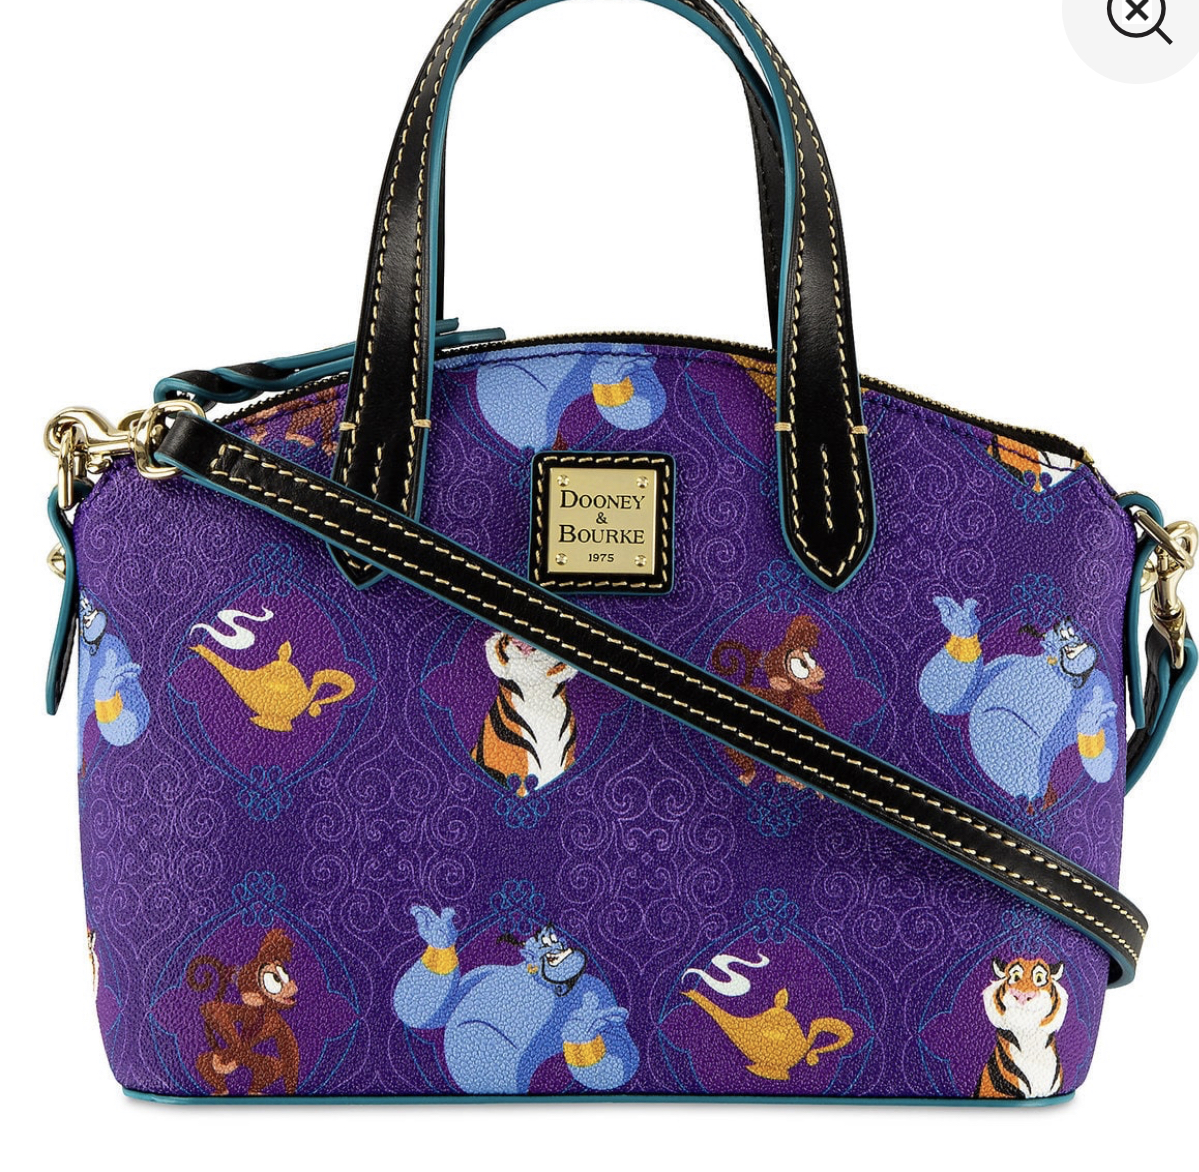 A Whole New World Of Dooney Bags Have Taken A Magic Carpet Ride To Disney 4